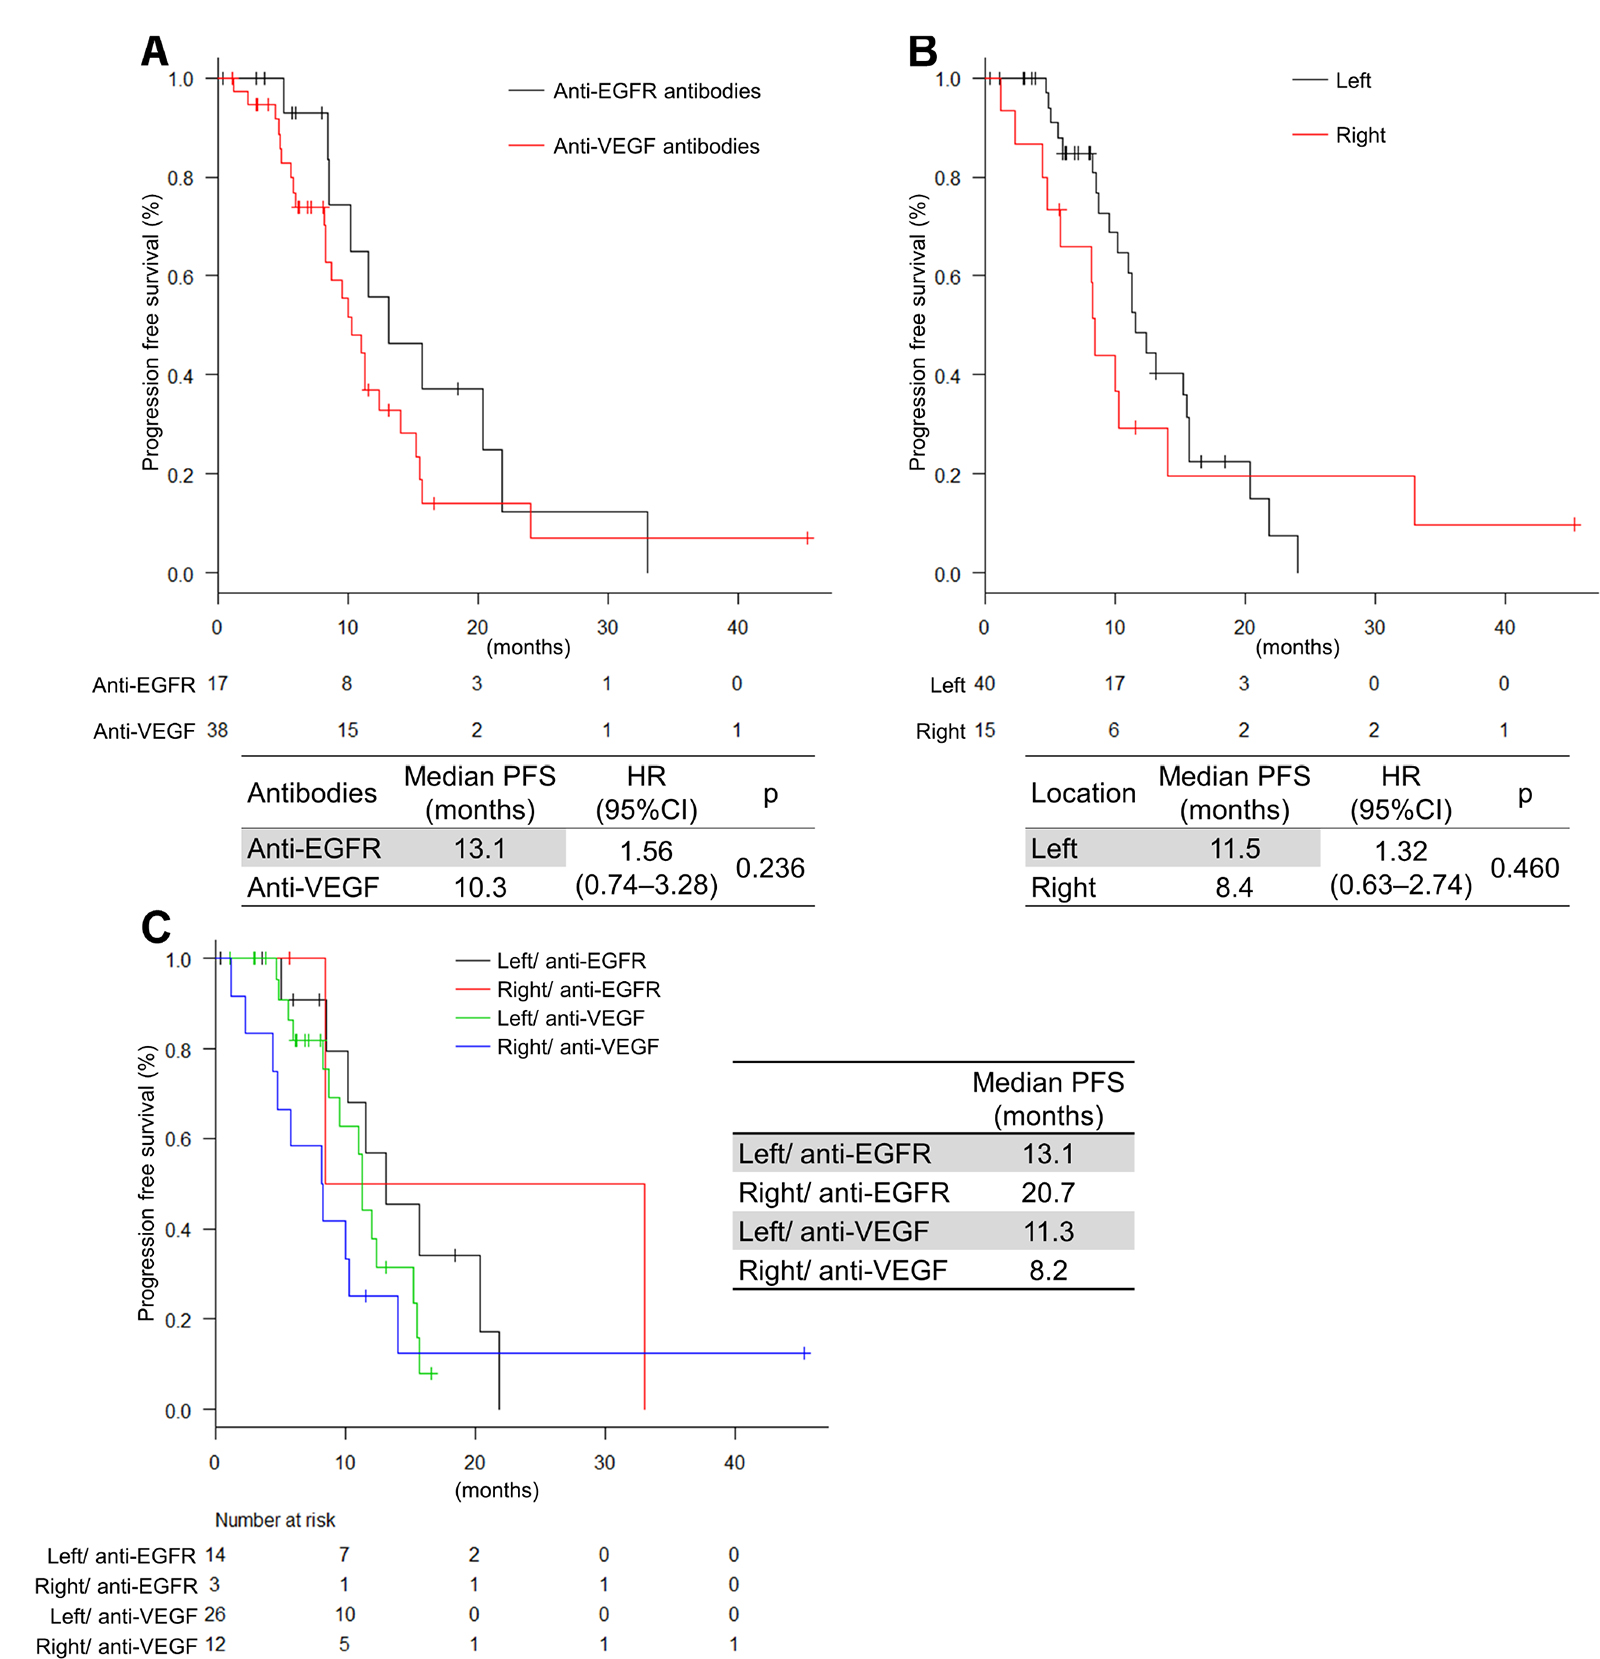 Progression-free survival by antibodies and tumor location.